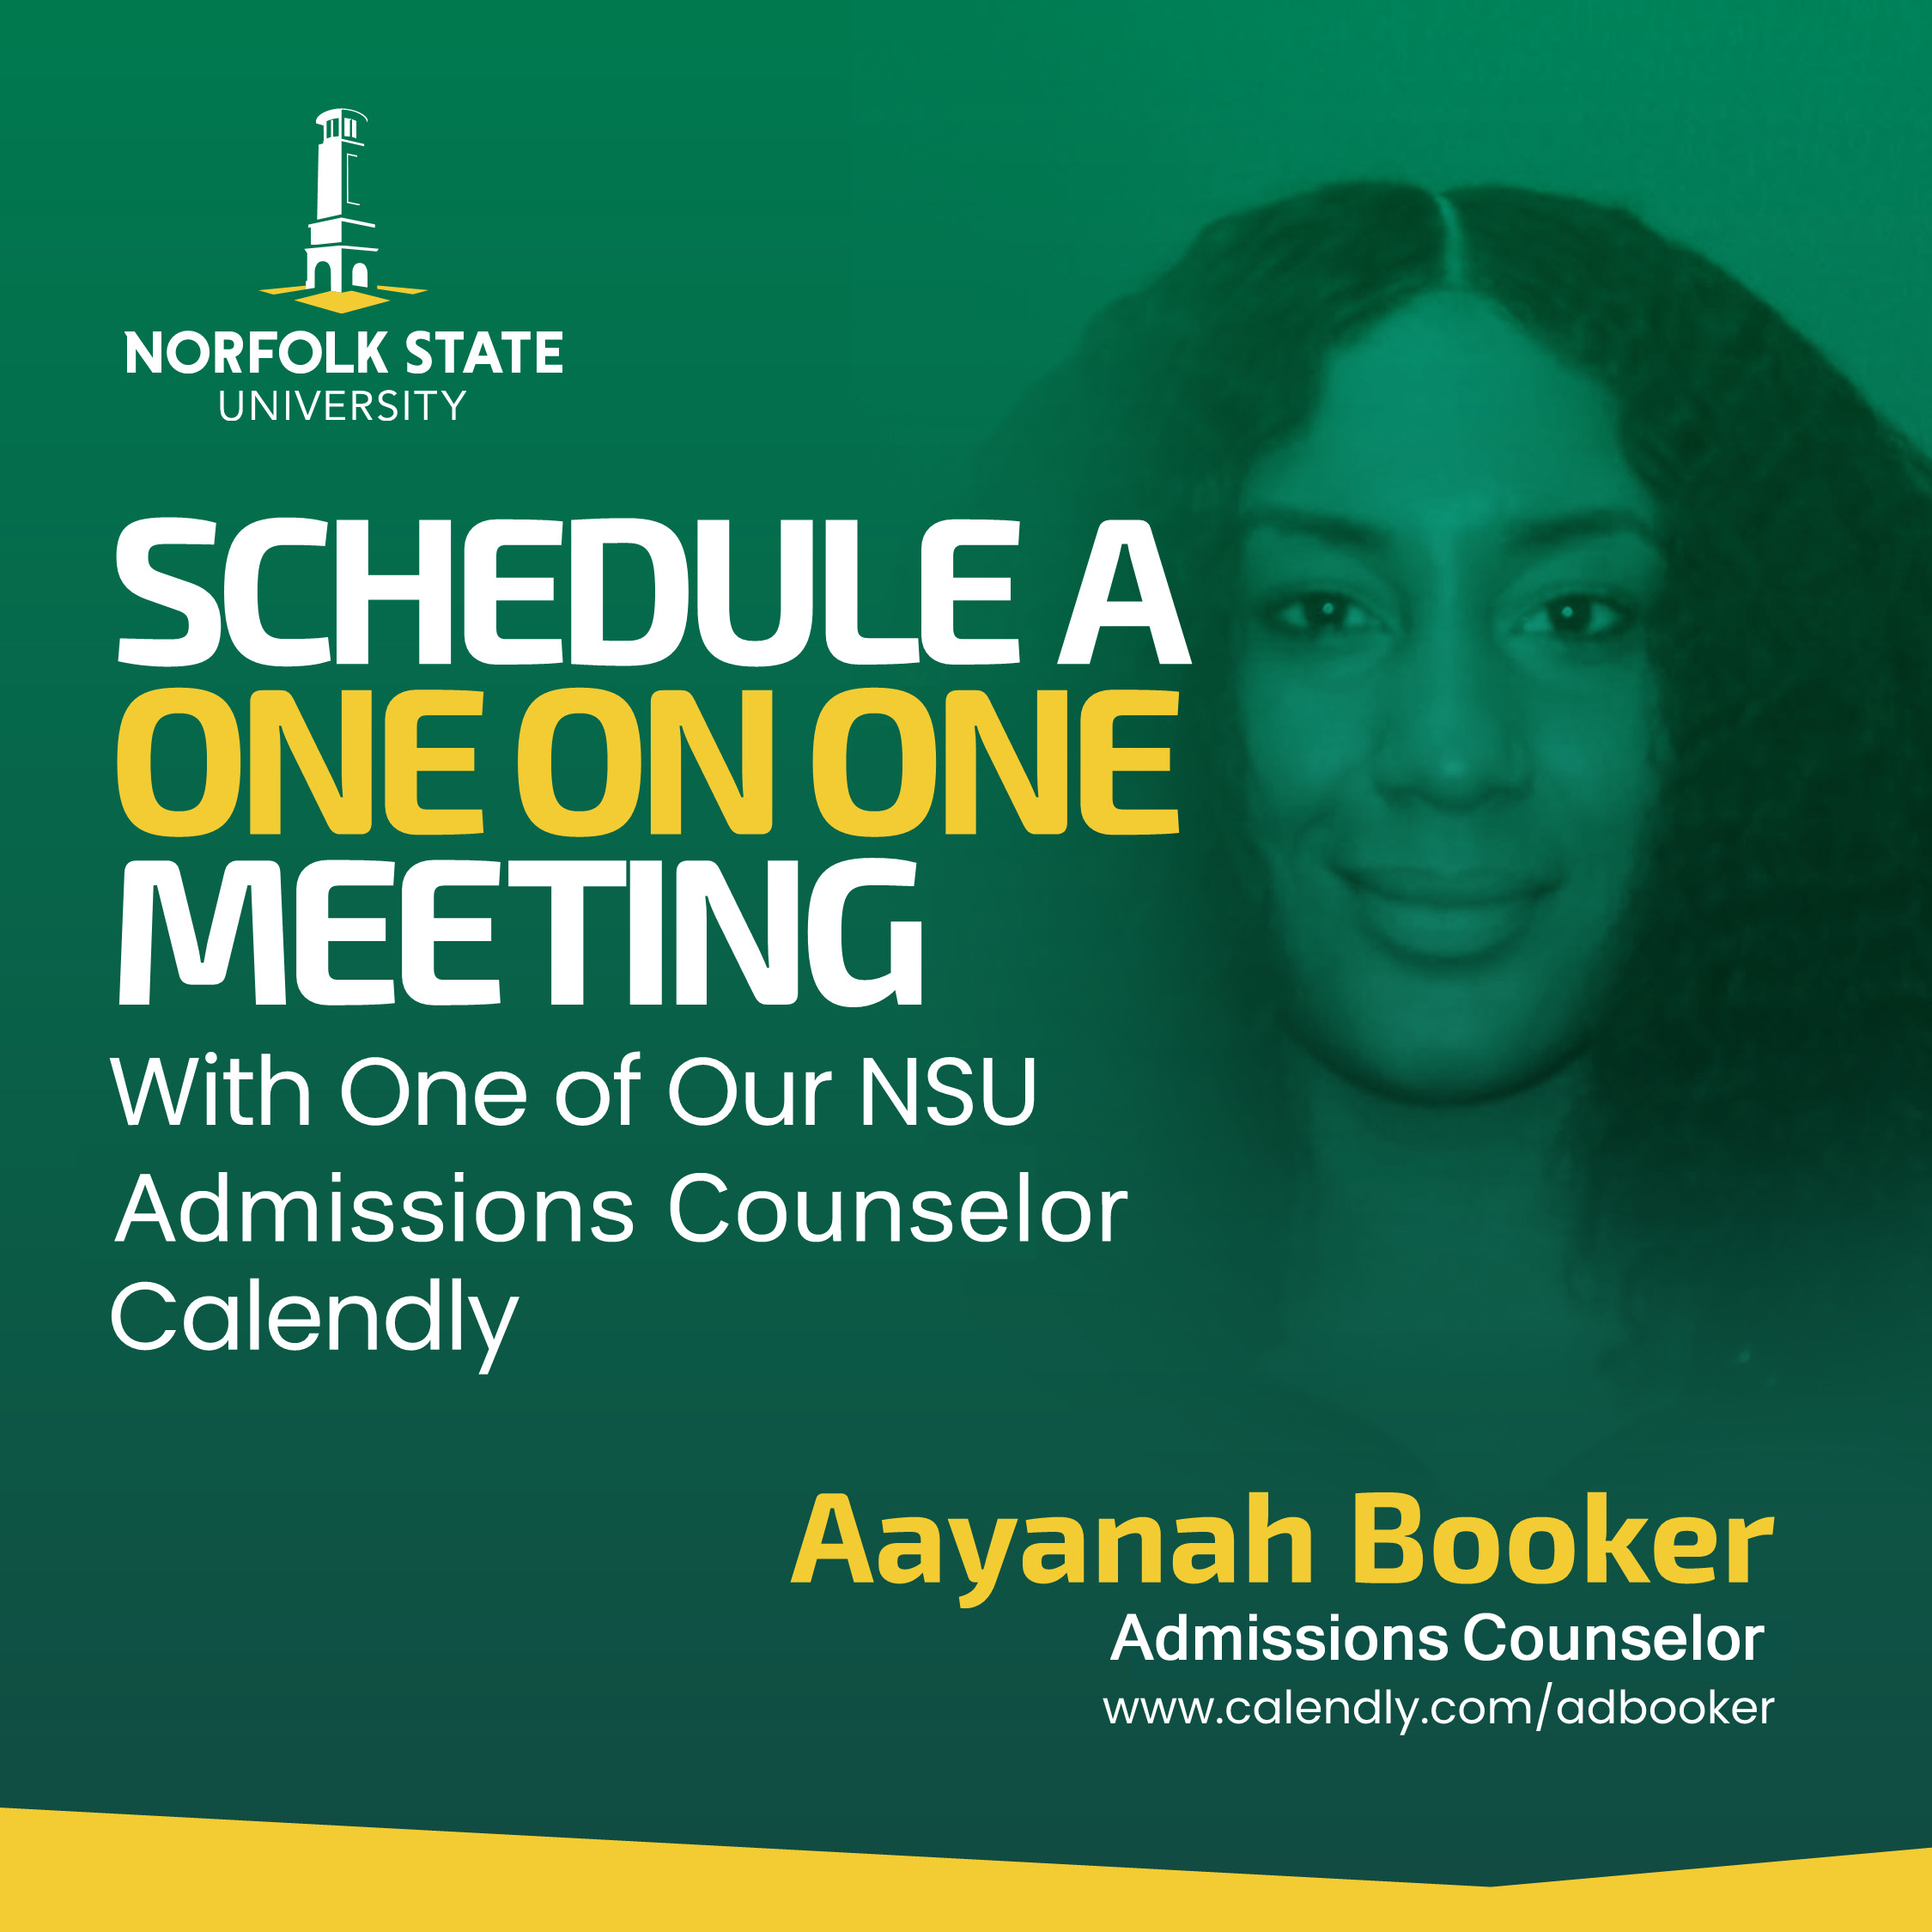 schedule-a-visit-with-Aayanah-Booker.jpg